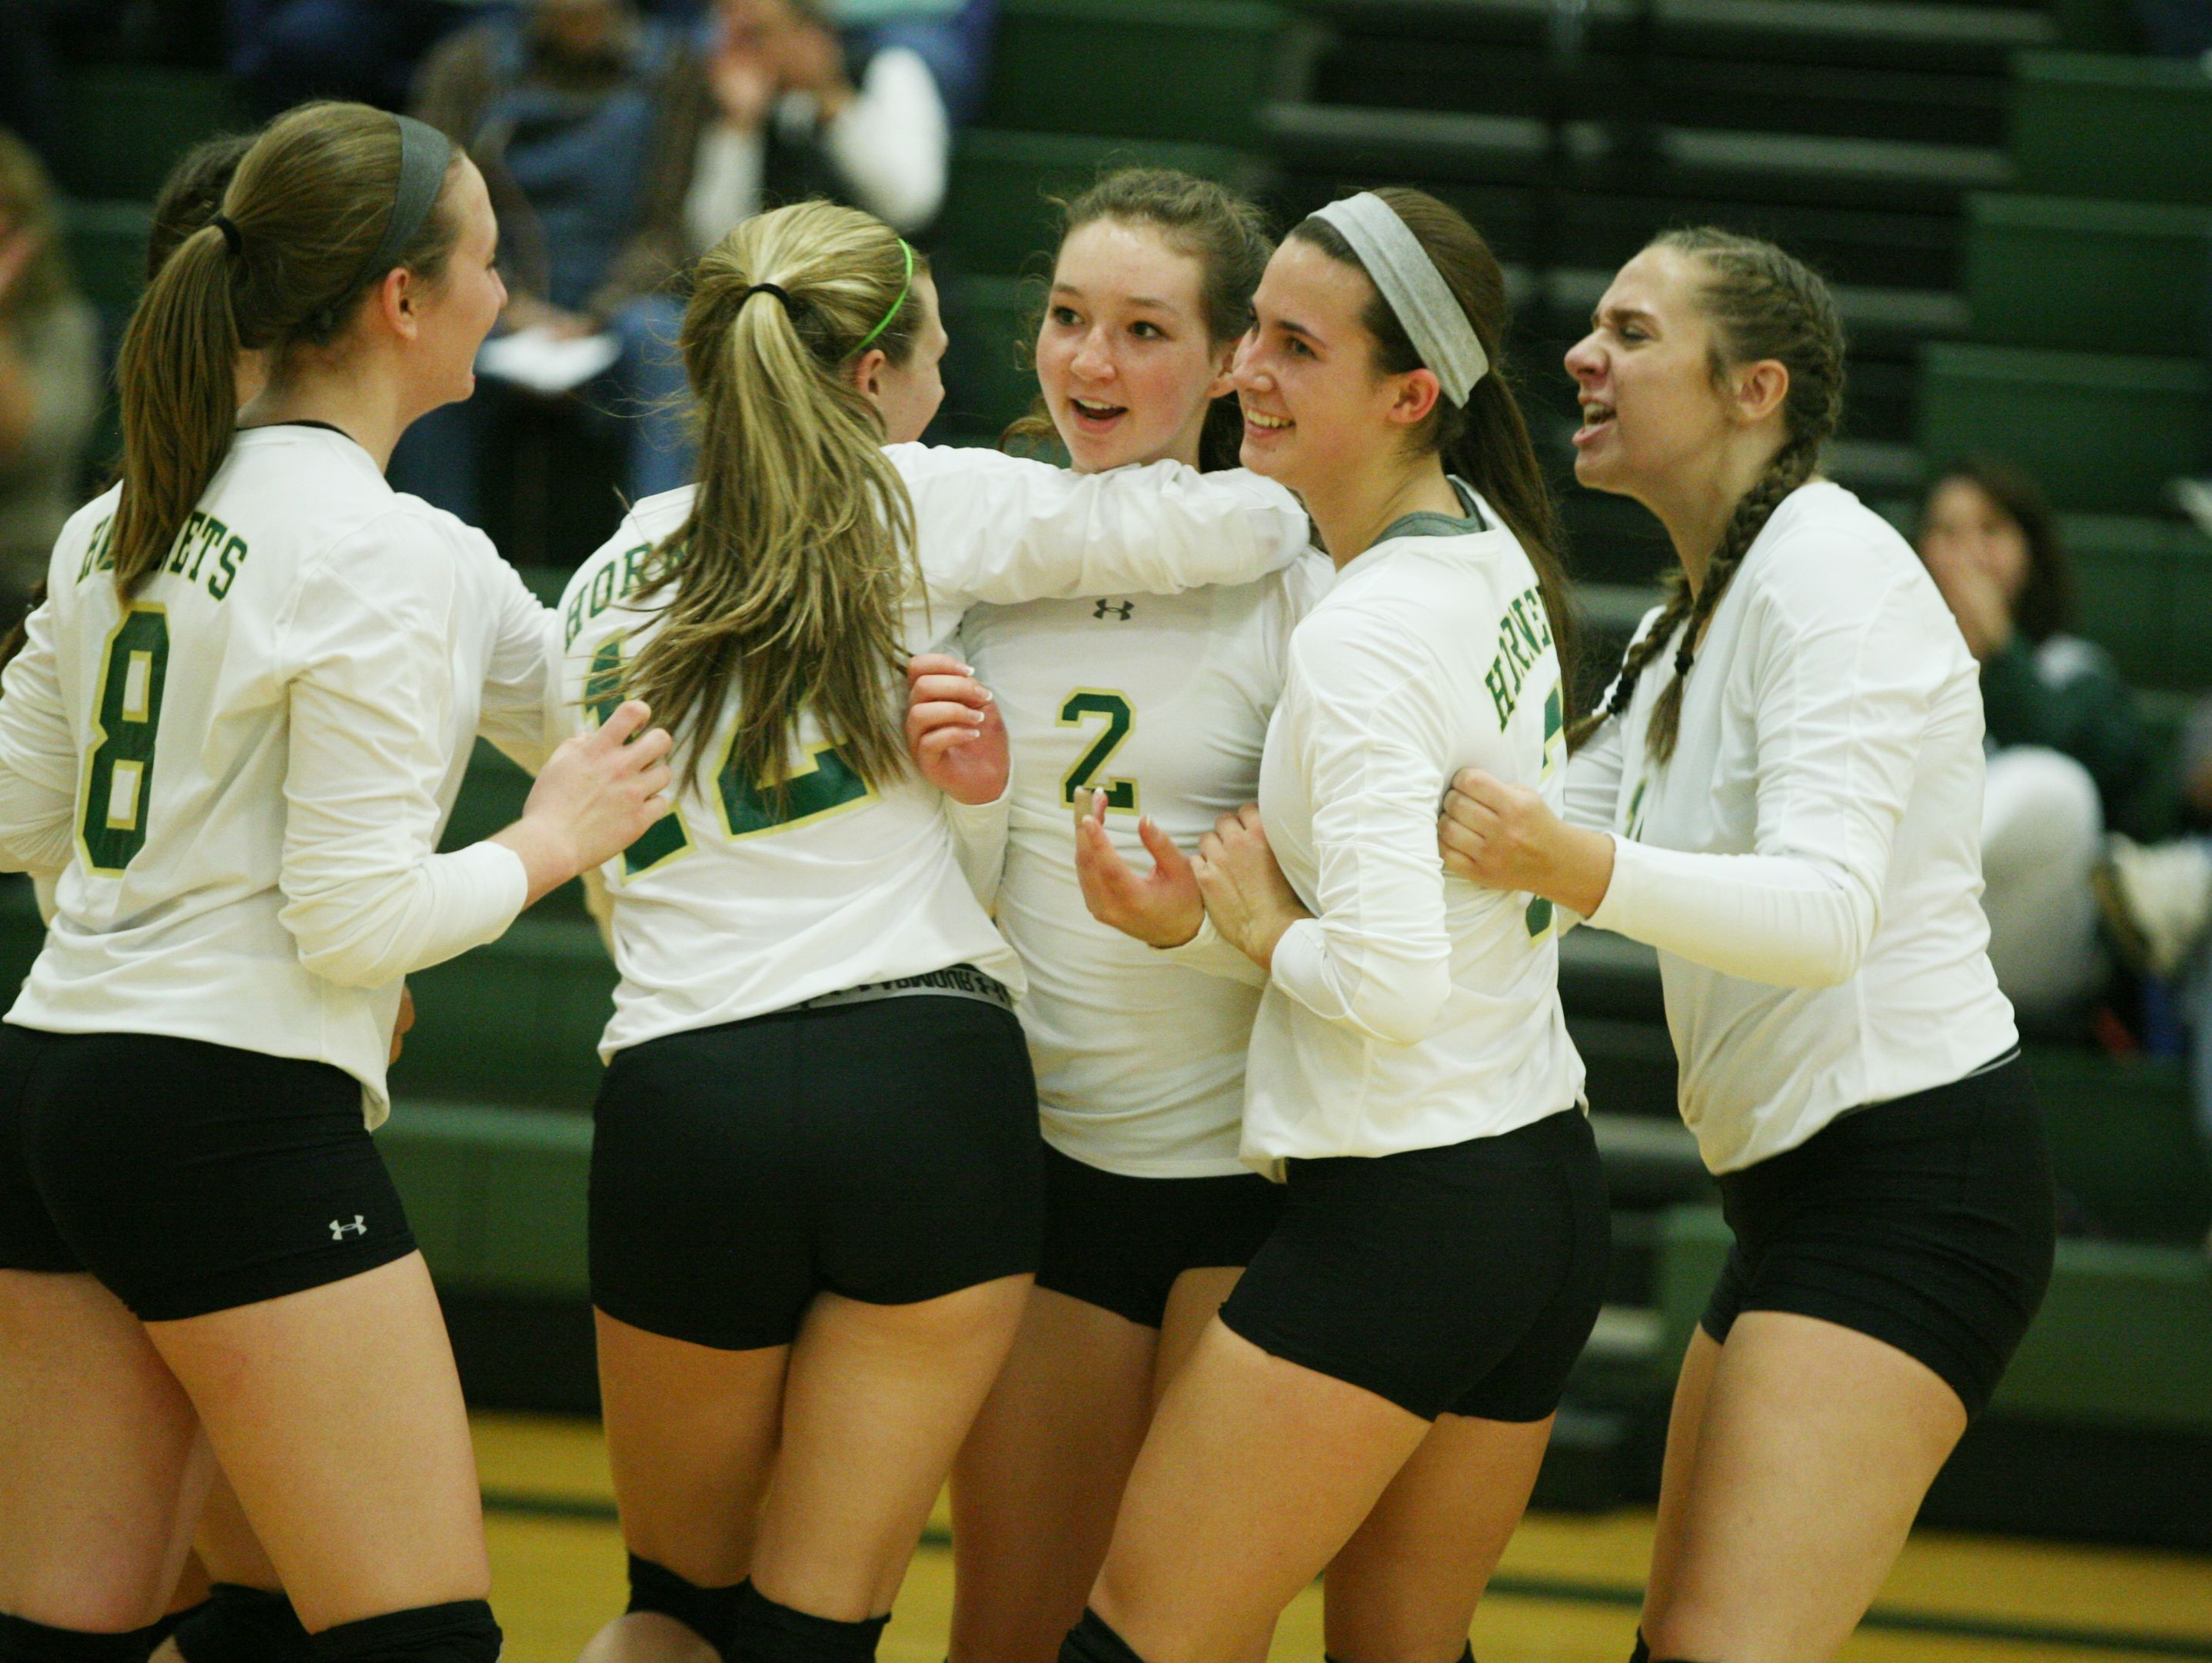 Wilson Memorial players celebrate after winning the first game against East Rockingham during the Conference 36 quarterfinal match at Wilson Memorial in Fishersville on Tuesday, Nov. 1, 2016.